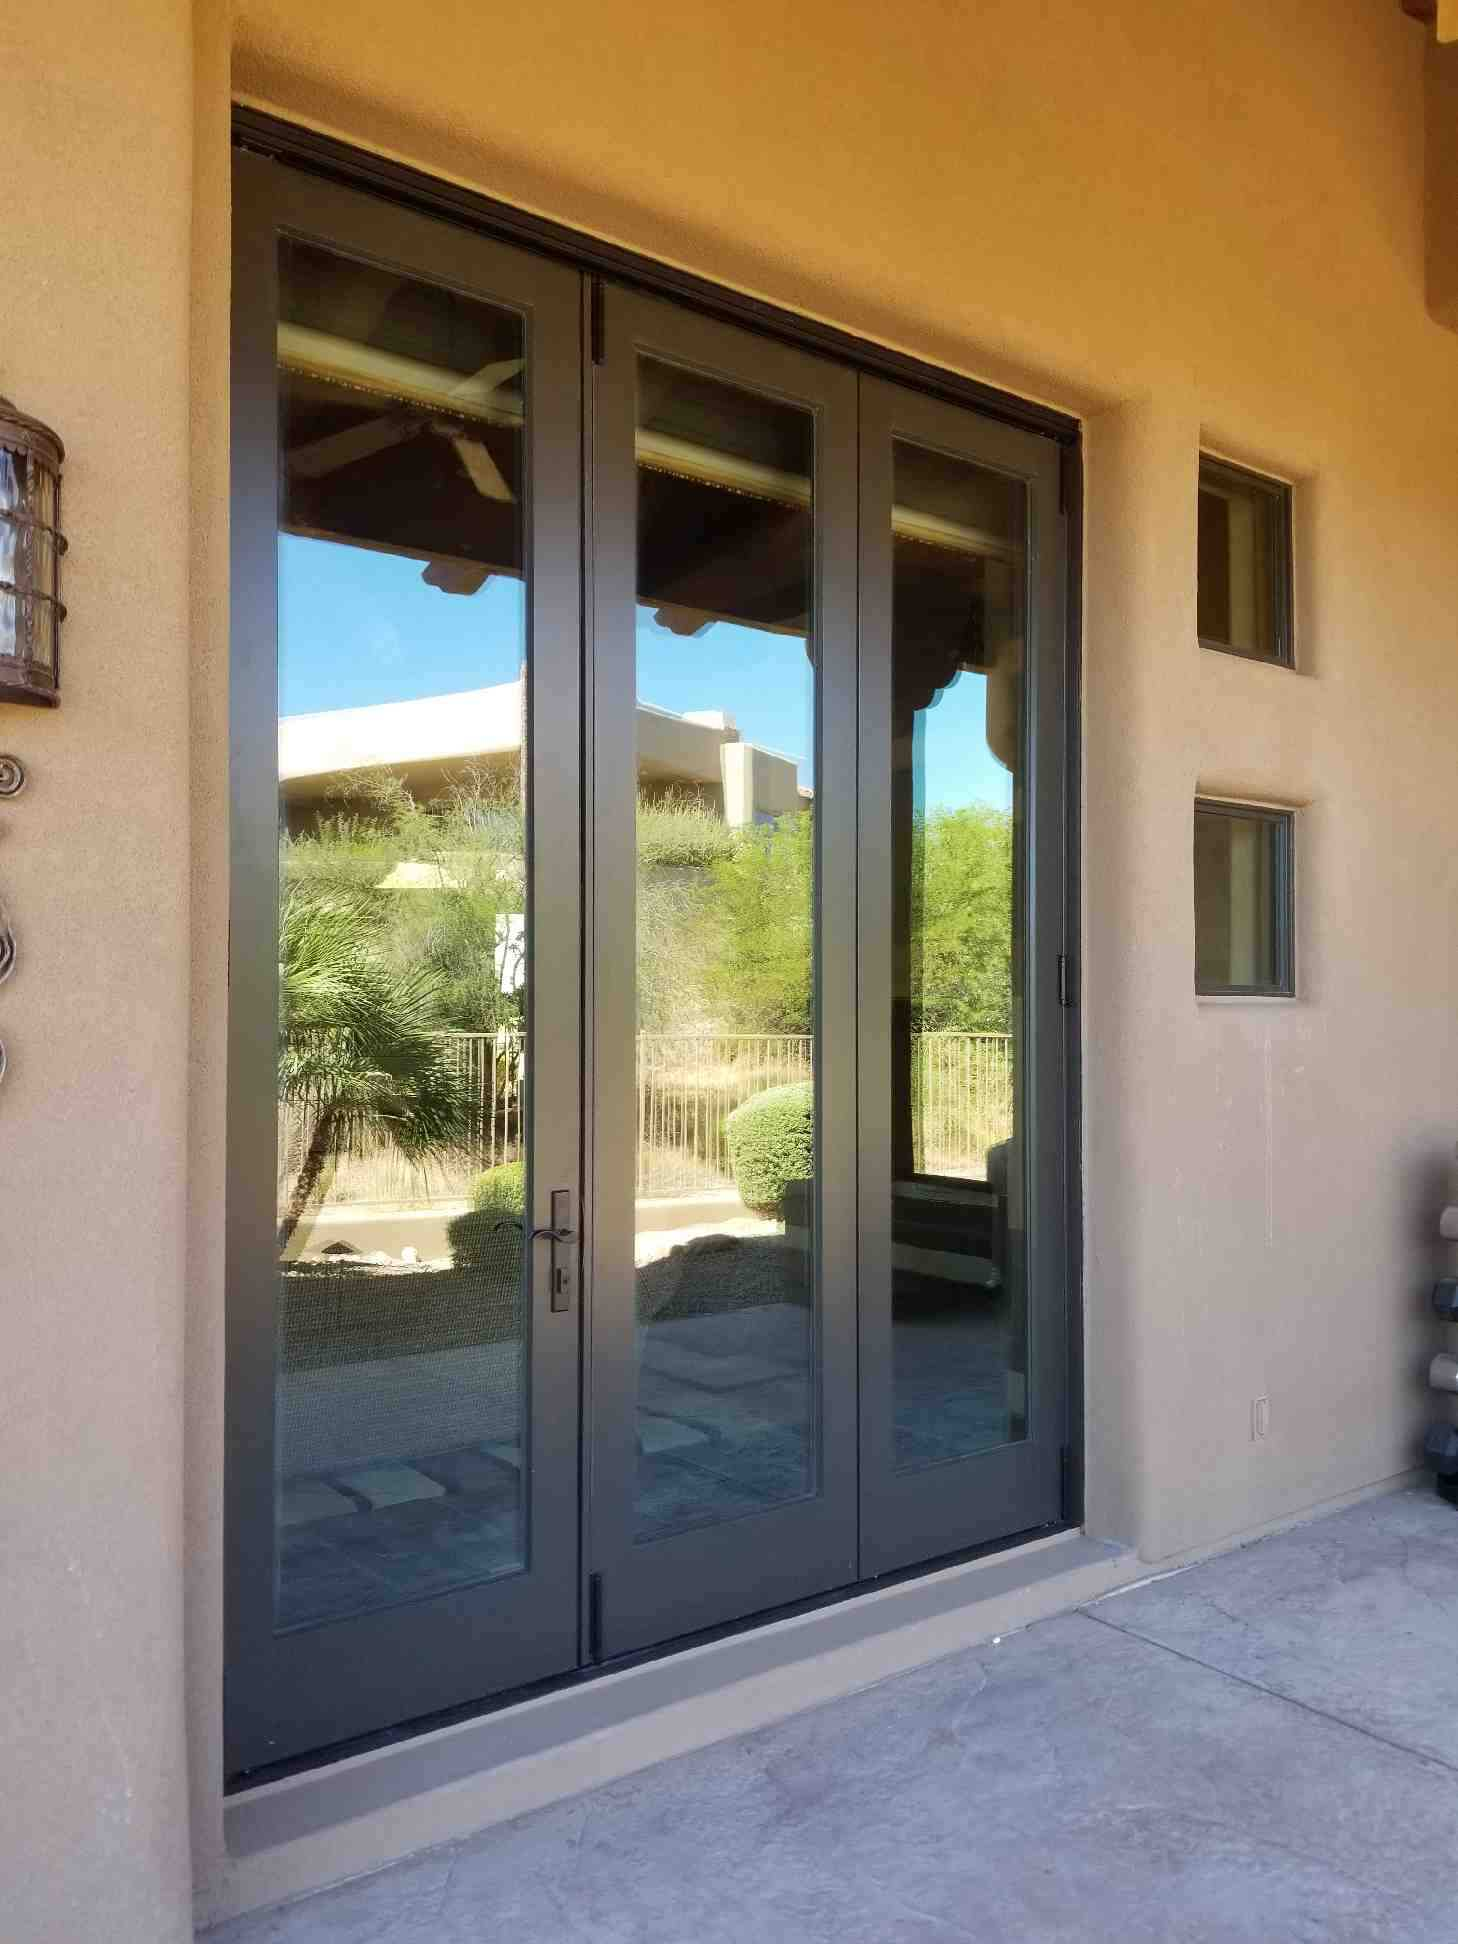 Arizona Window and Door in Scottsdale and Tucson showing multipanel door to patio